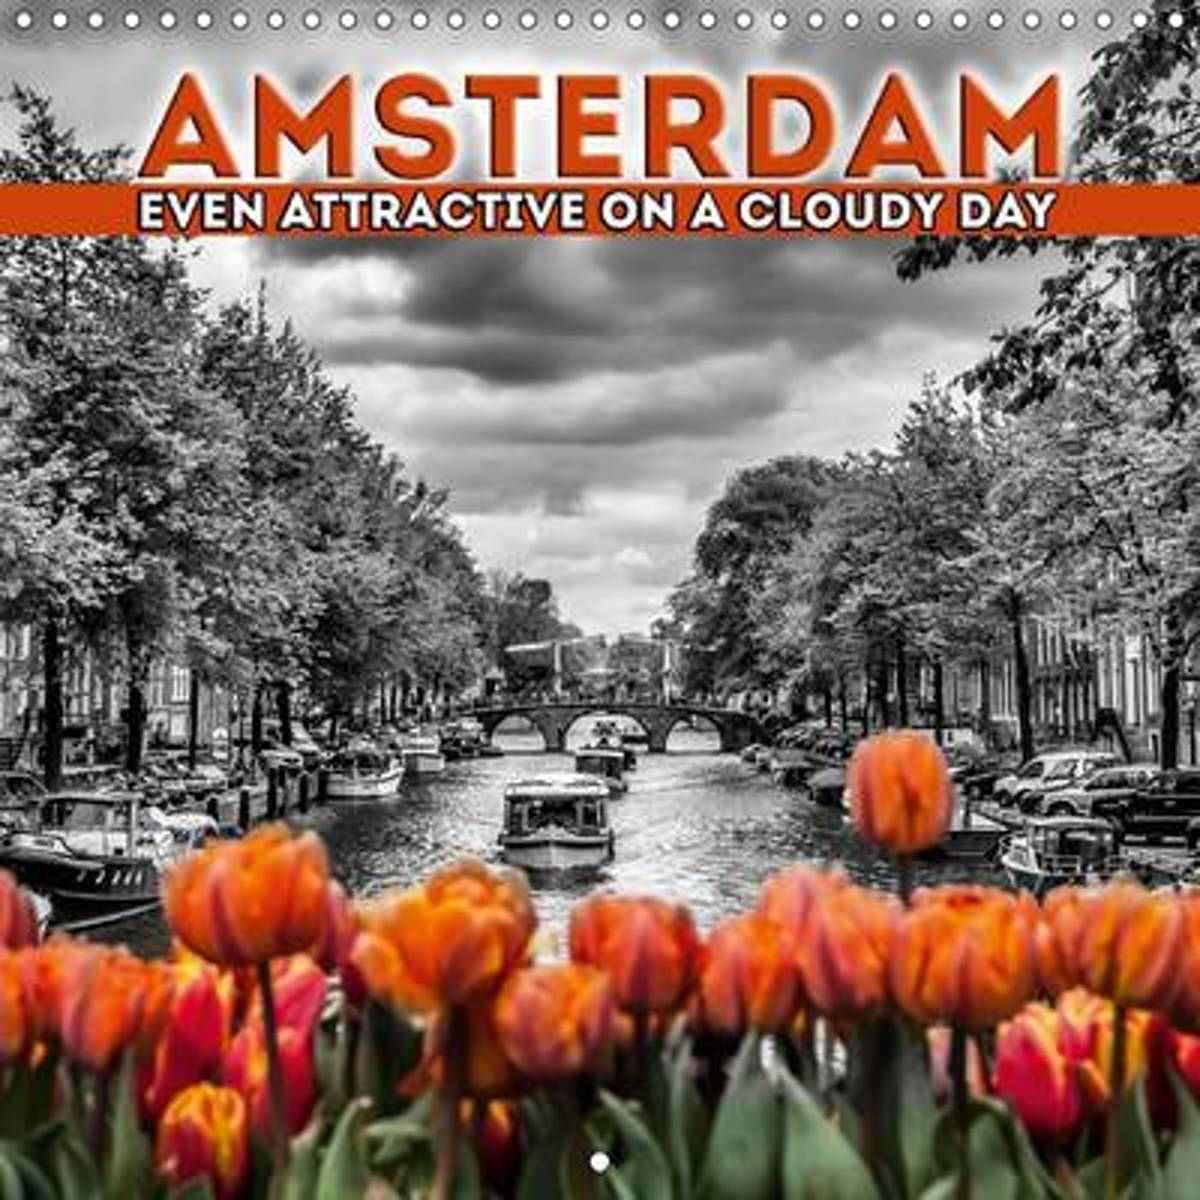 Viola, M: Amsterdam Even Attractive on a Cloudy Day 2017